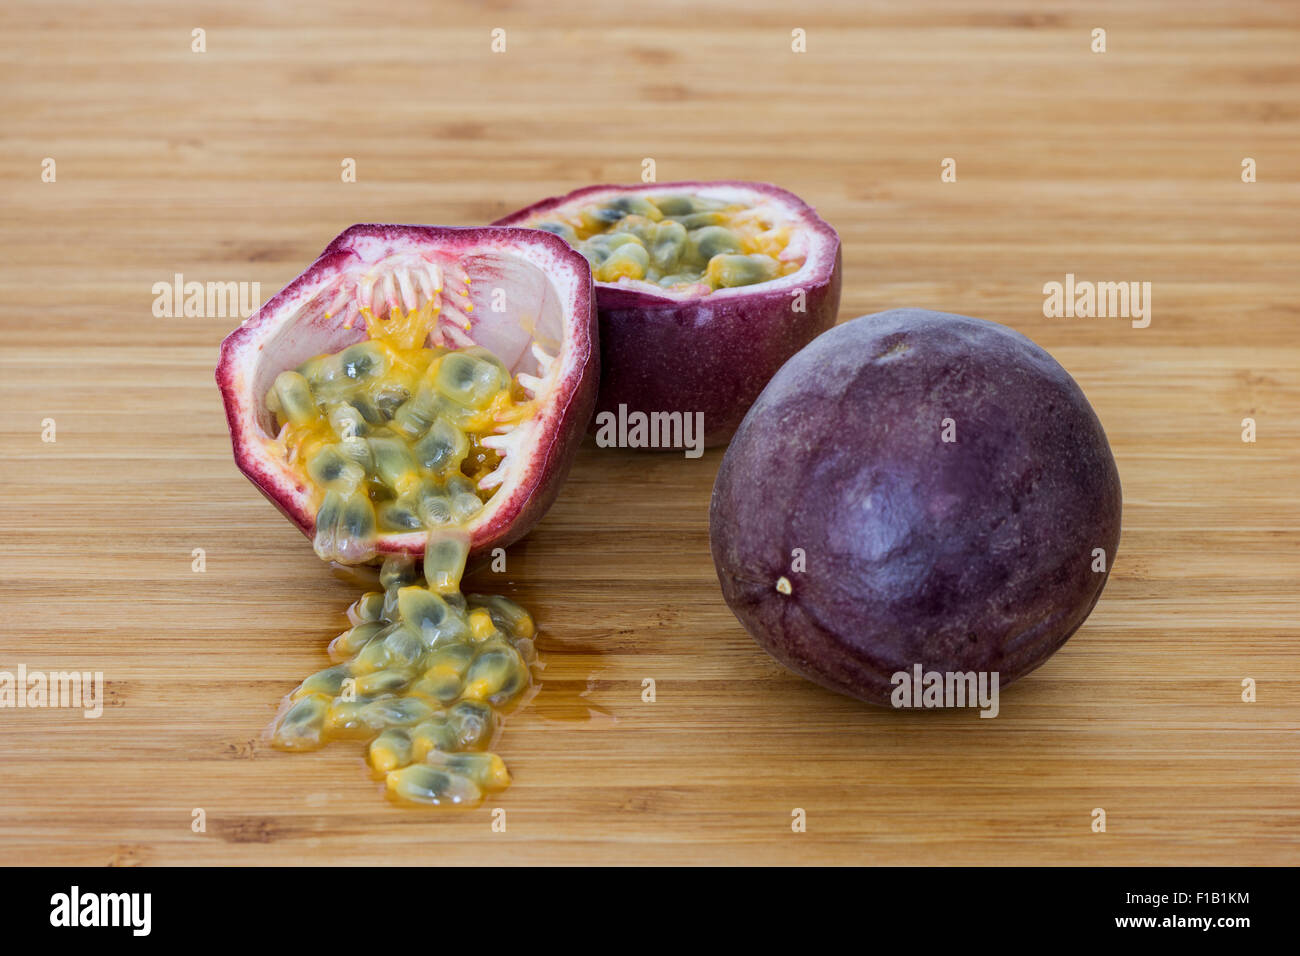 Close-up of a whole and split passion fruits (passionfruit, purple granadilla (Passiflora edulis)), seeds on a wooden - Stock Image